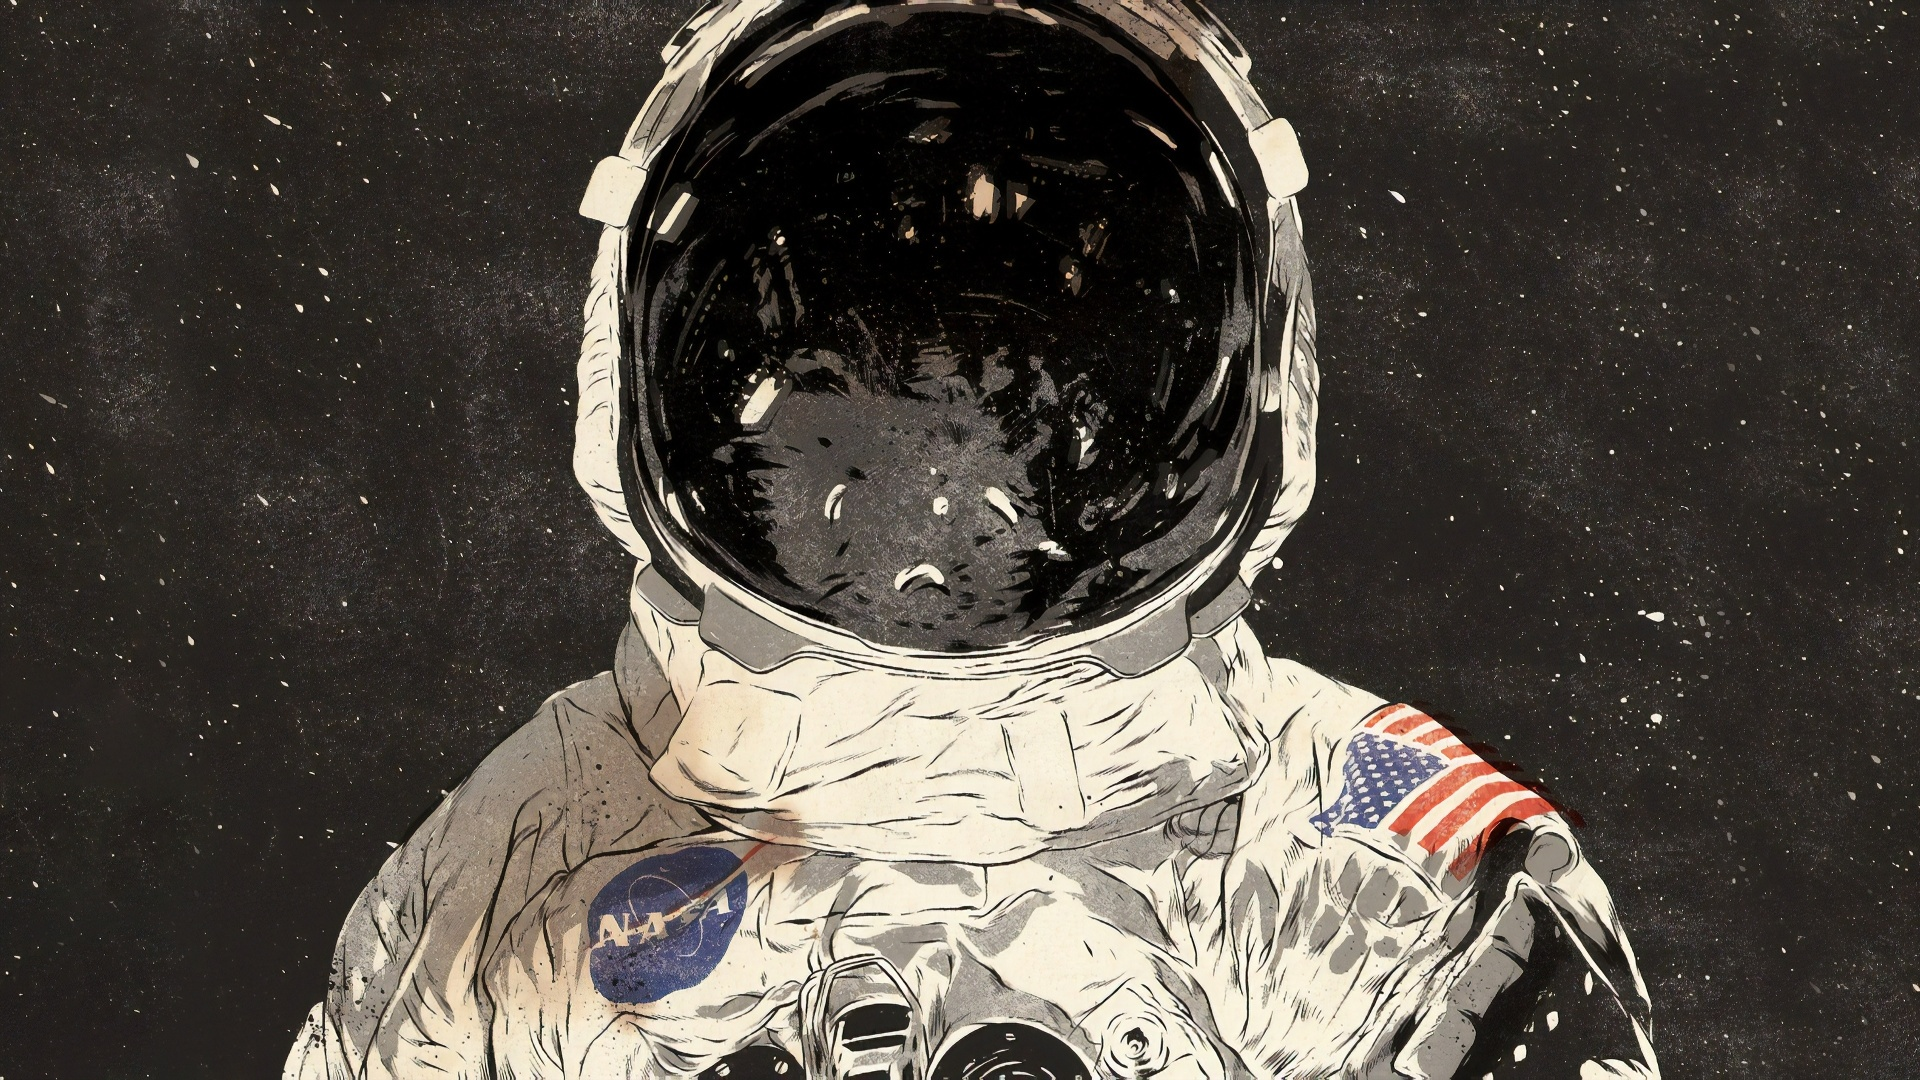 Astronaut Art computer wallpaper